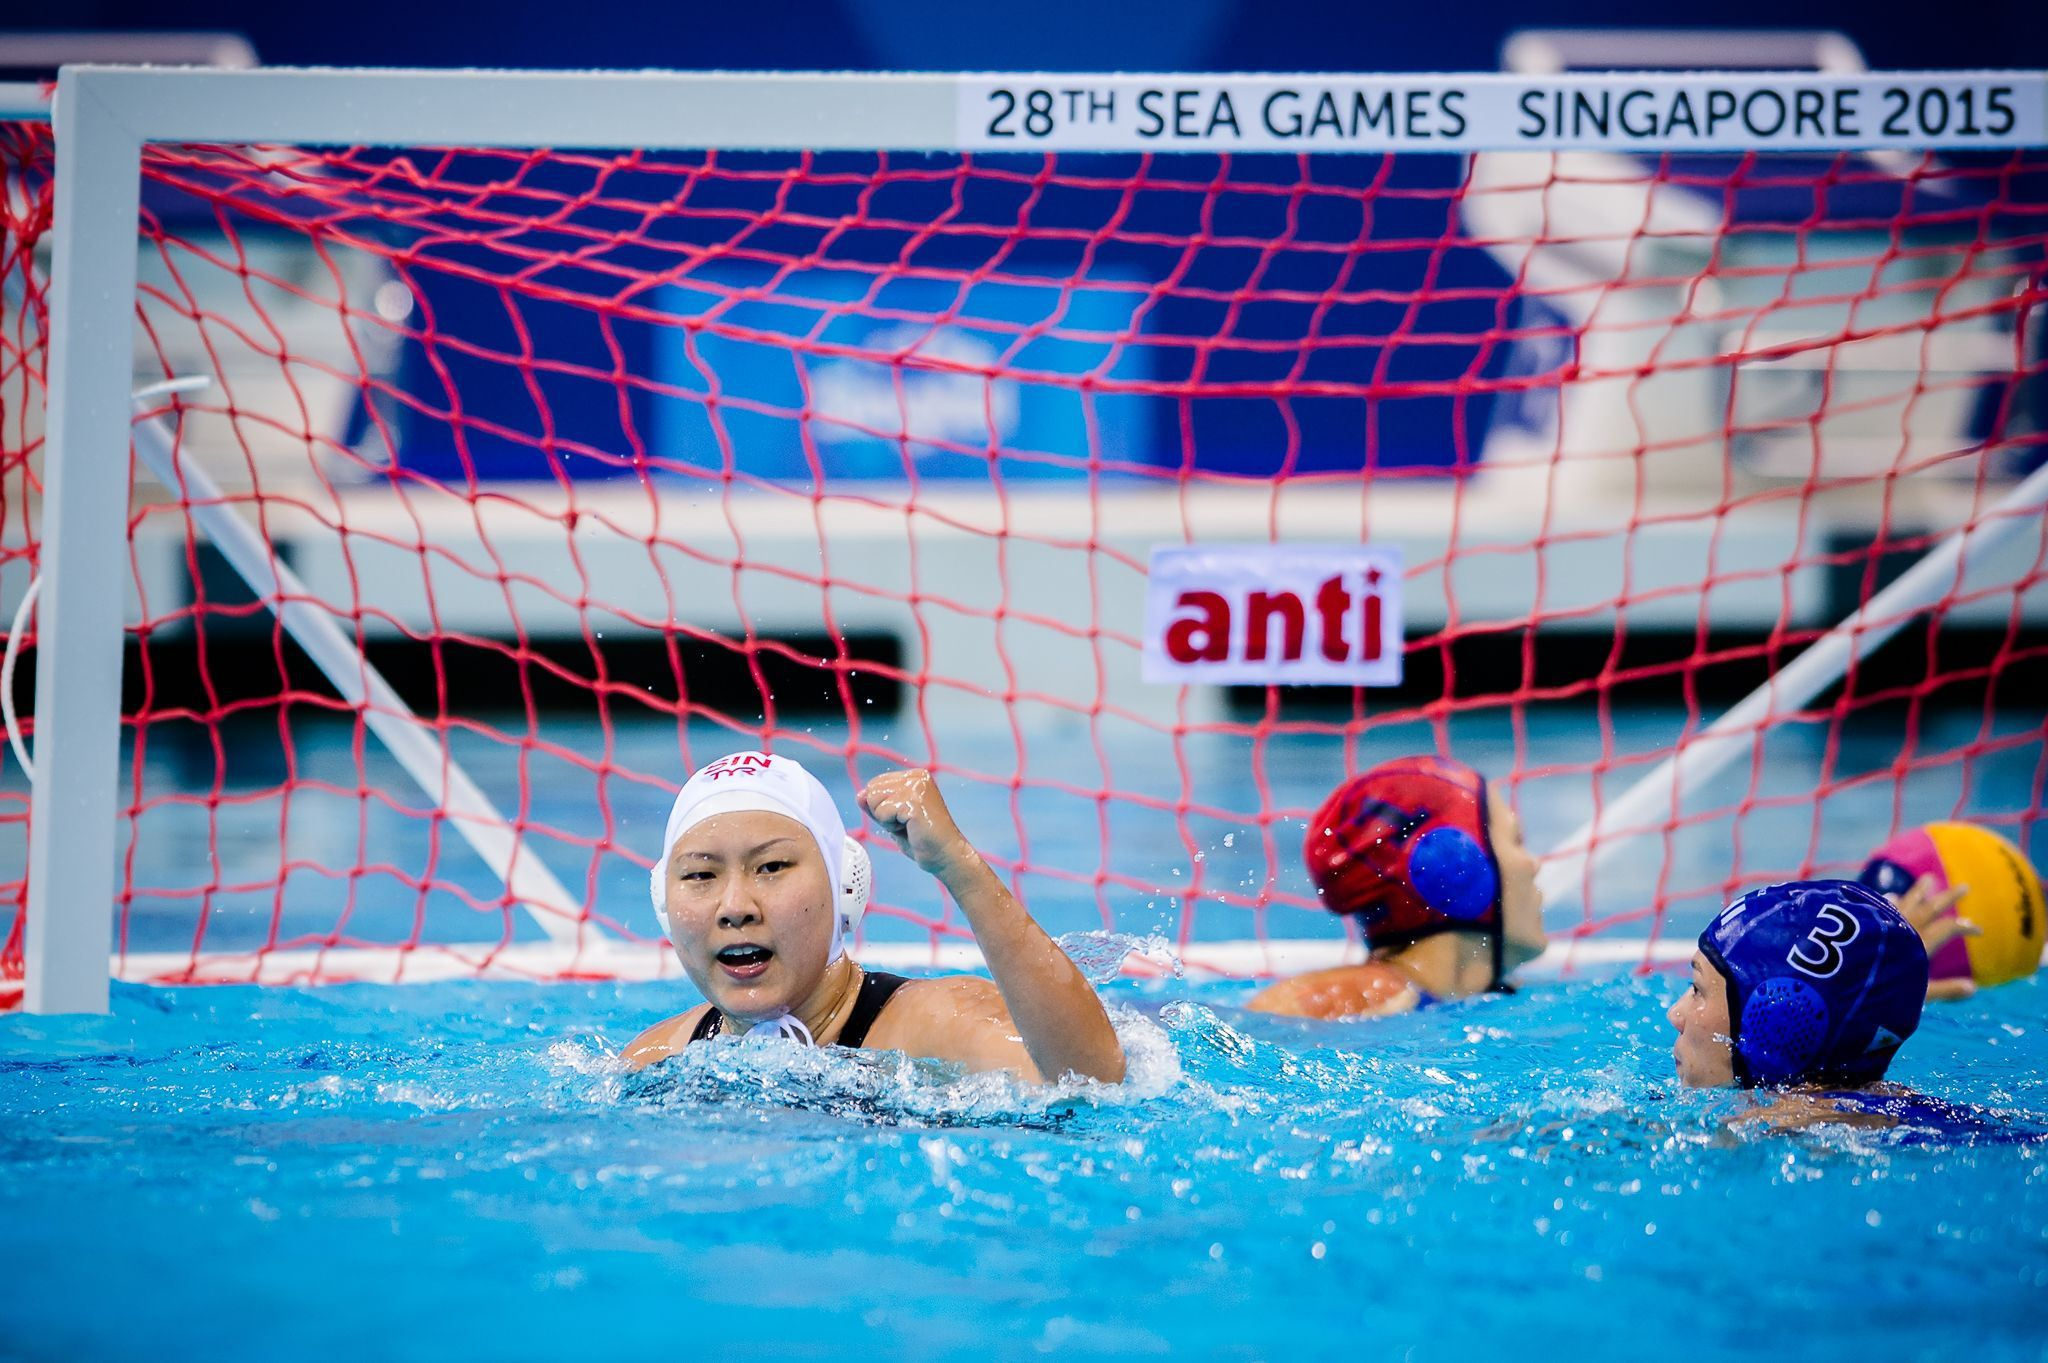 28th Sea Games Water Polo Singapore Sports Photography Water Polo Women S Water Polo Sports Photograph